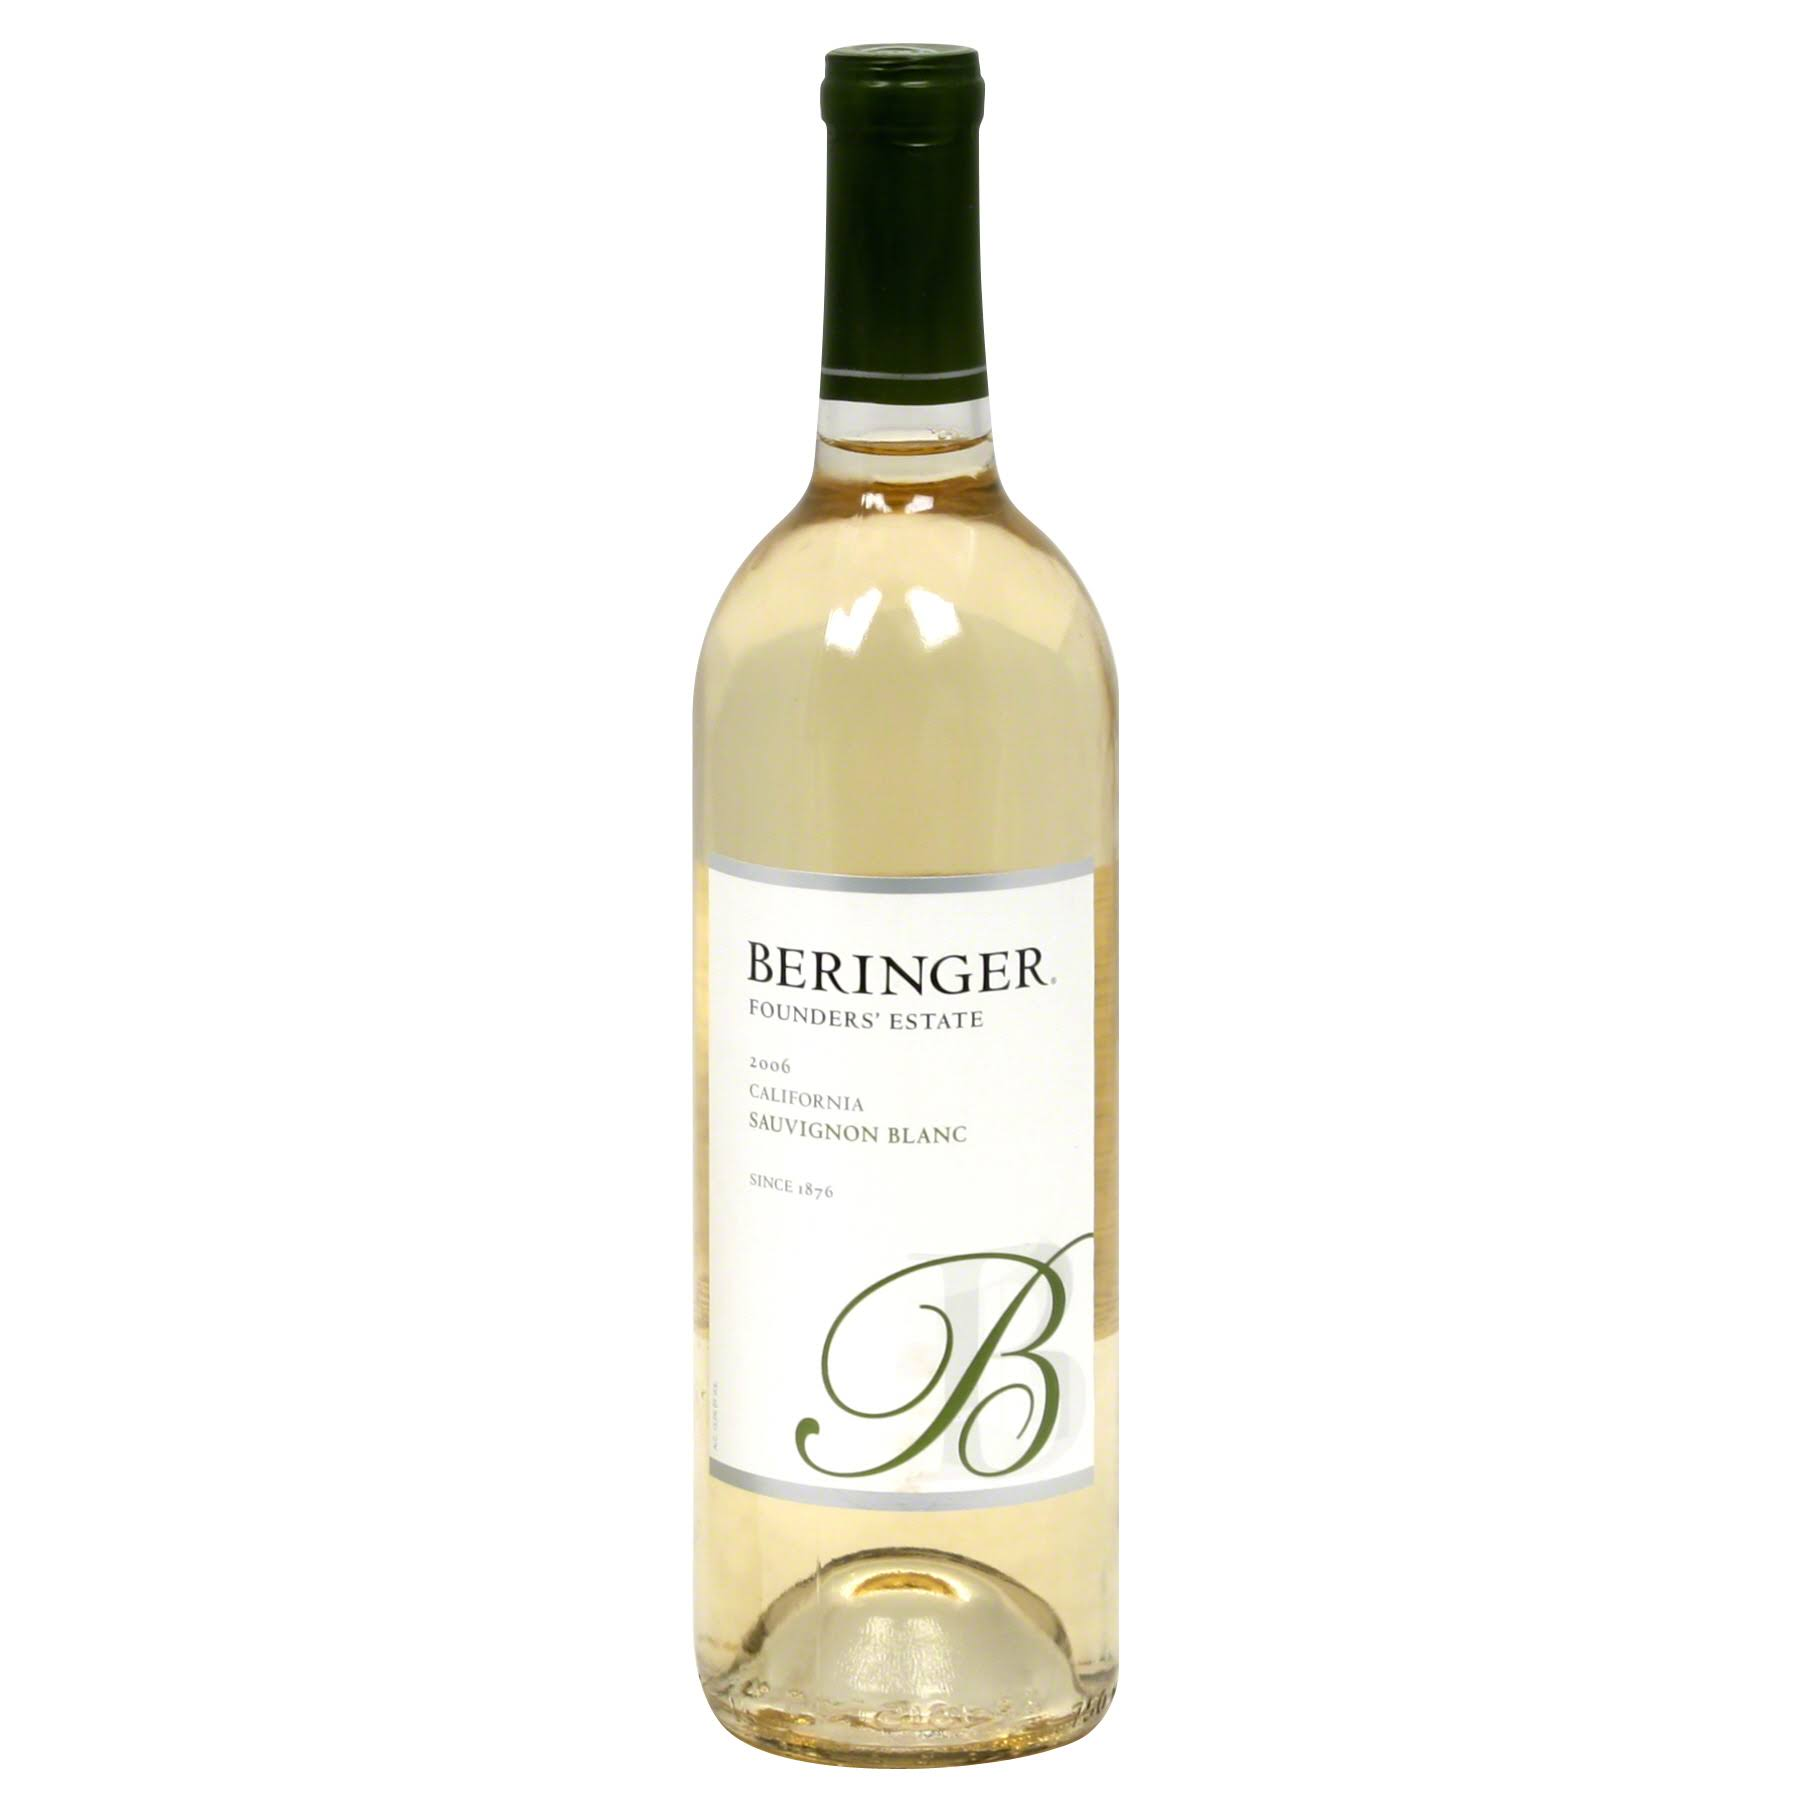 Beringer Founder's Estate Sauvignon Blanc, California, 2006 - 750 ml